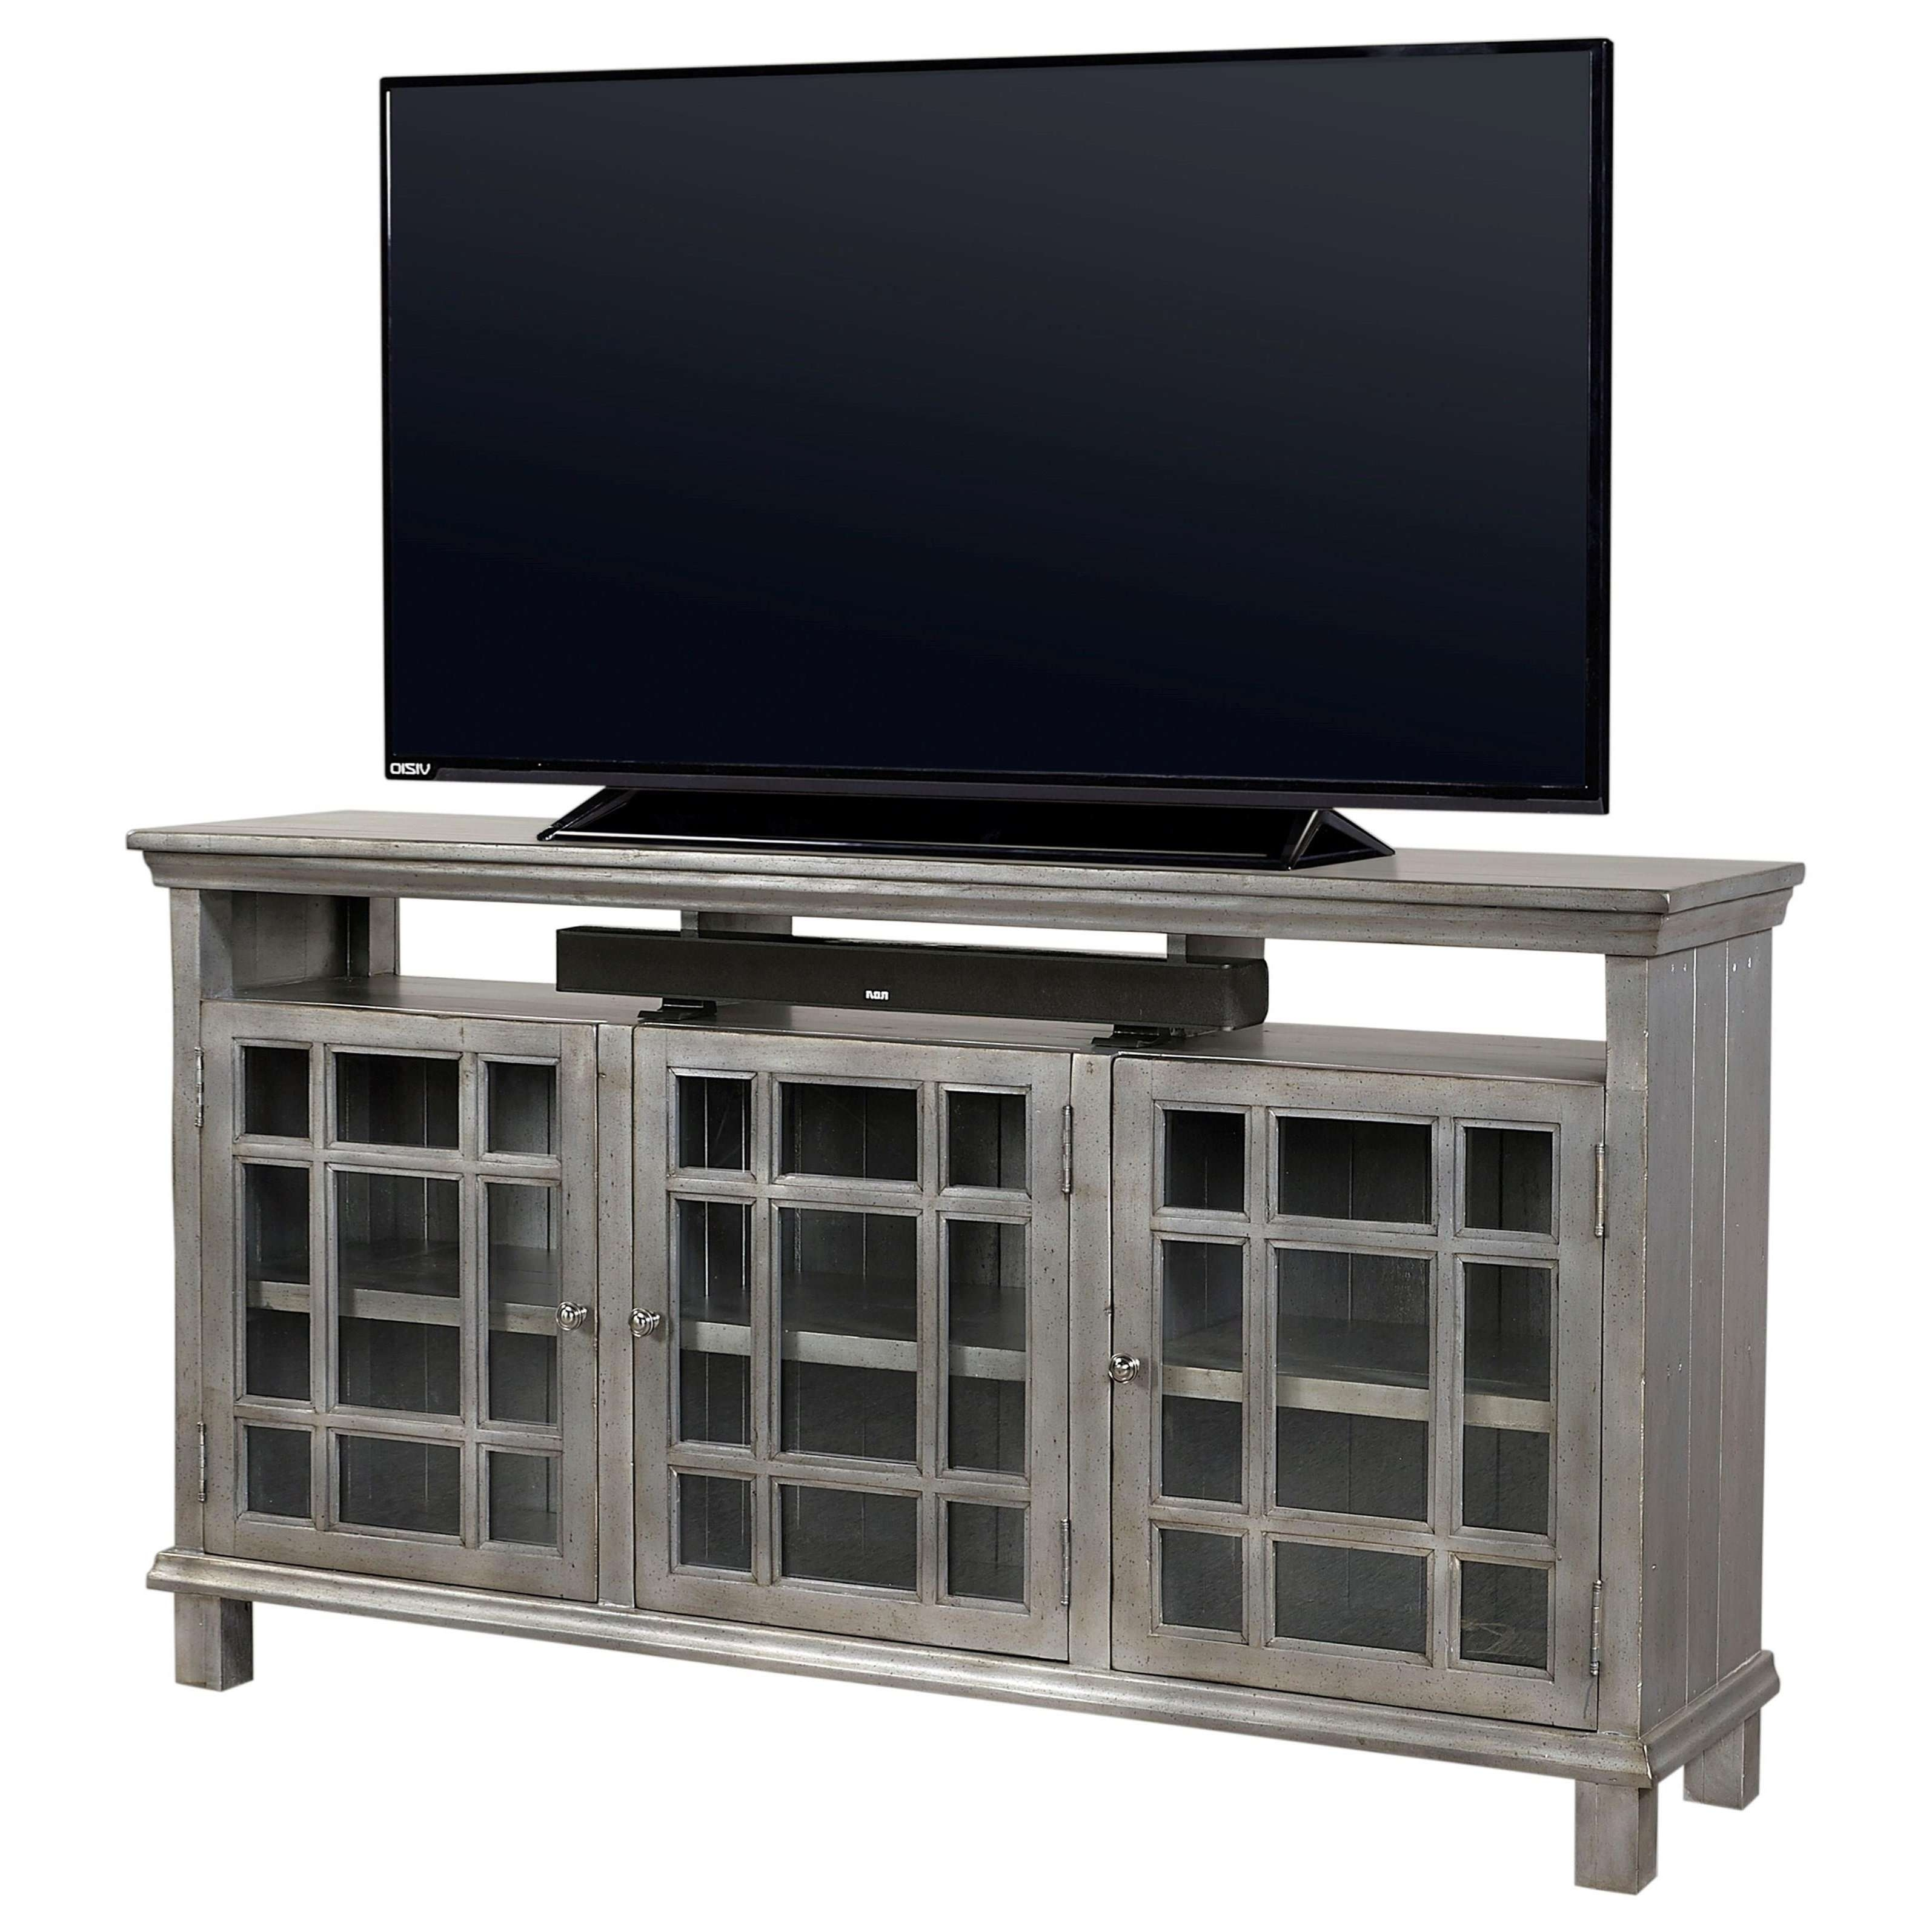 Tv : Amazing Oval White Tv Stands Techlink Ovid White Gloss Oval In Ovid White Tv Stands (View 9 of 15)